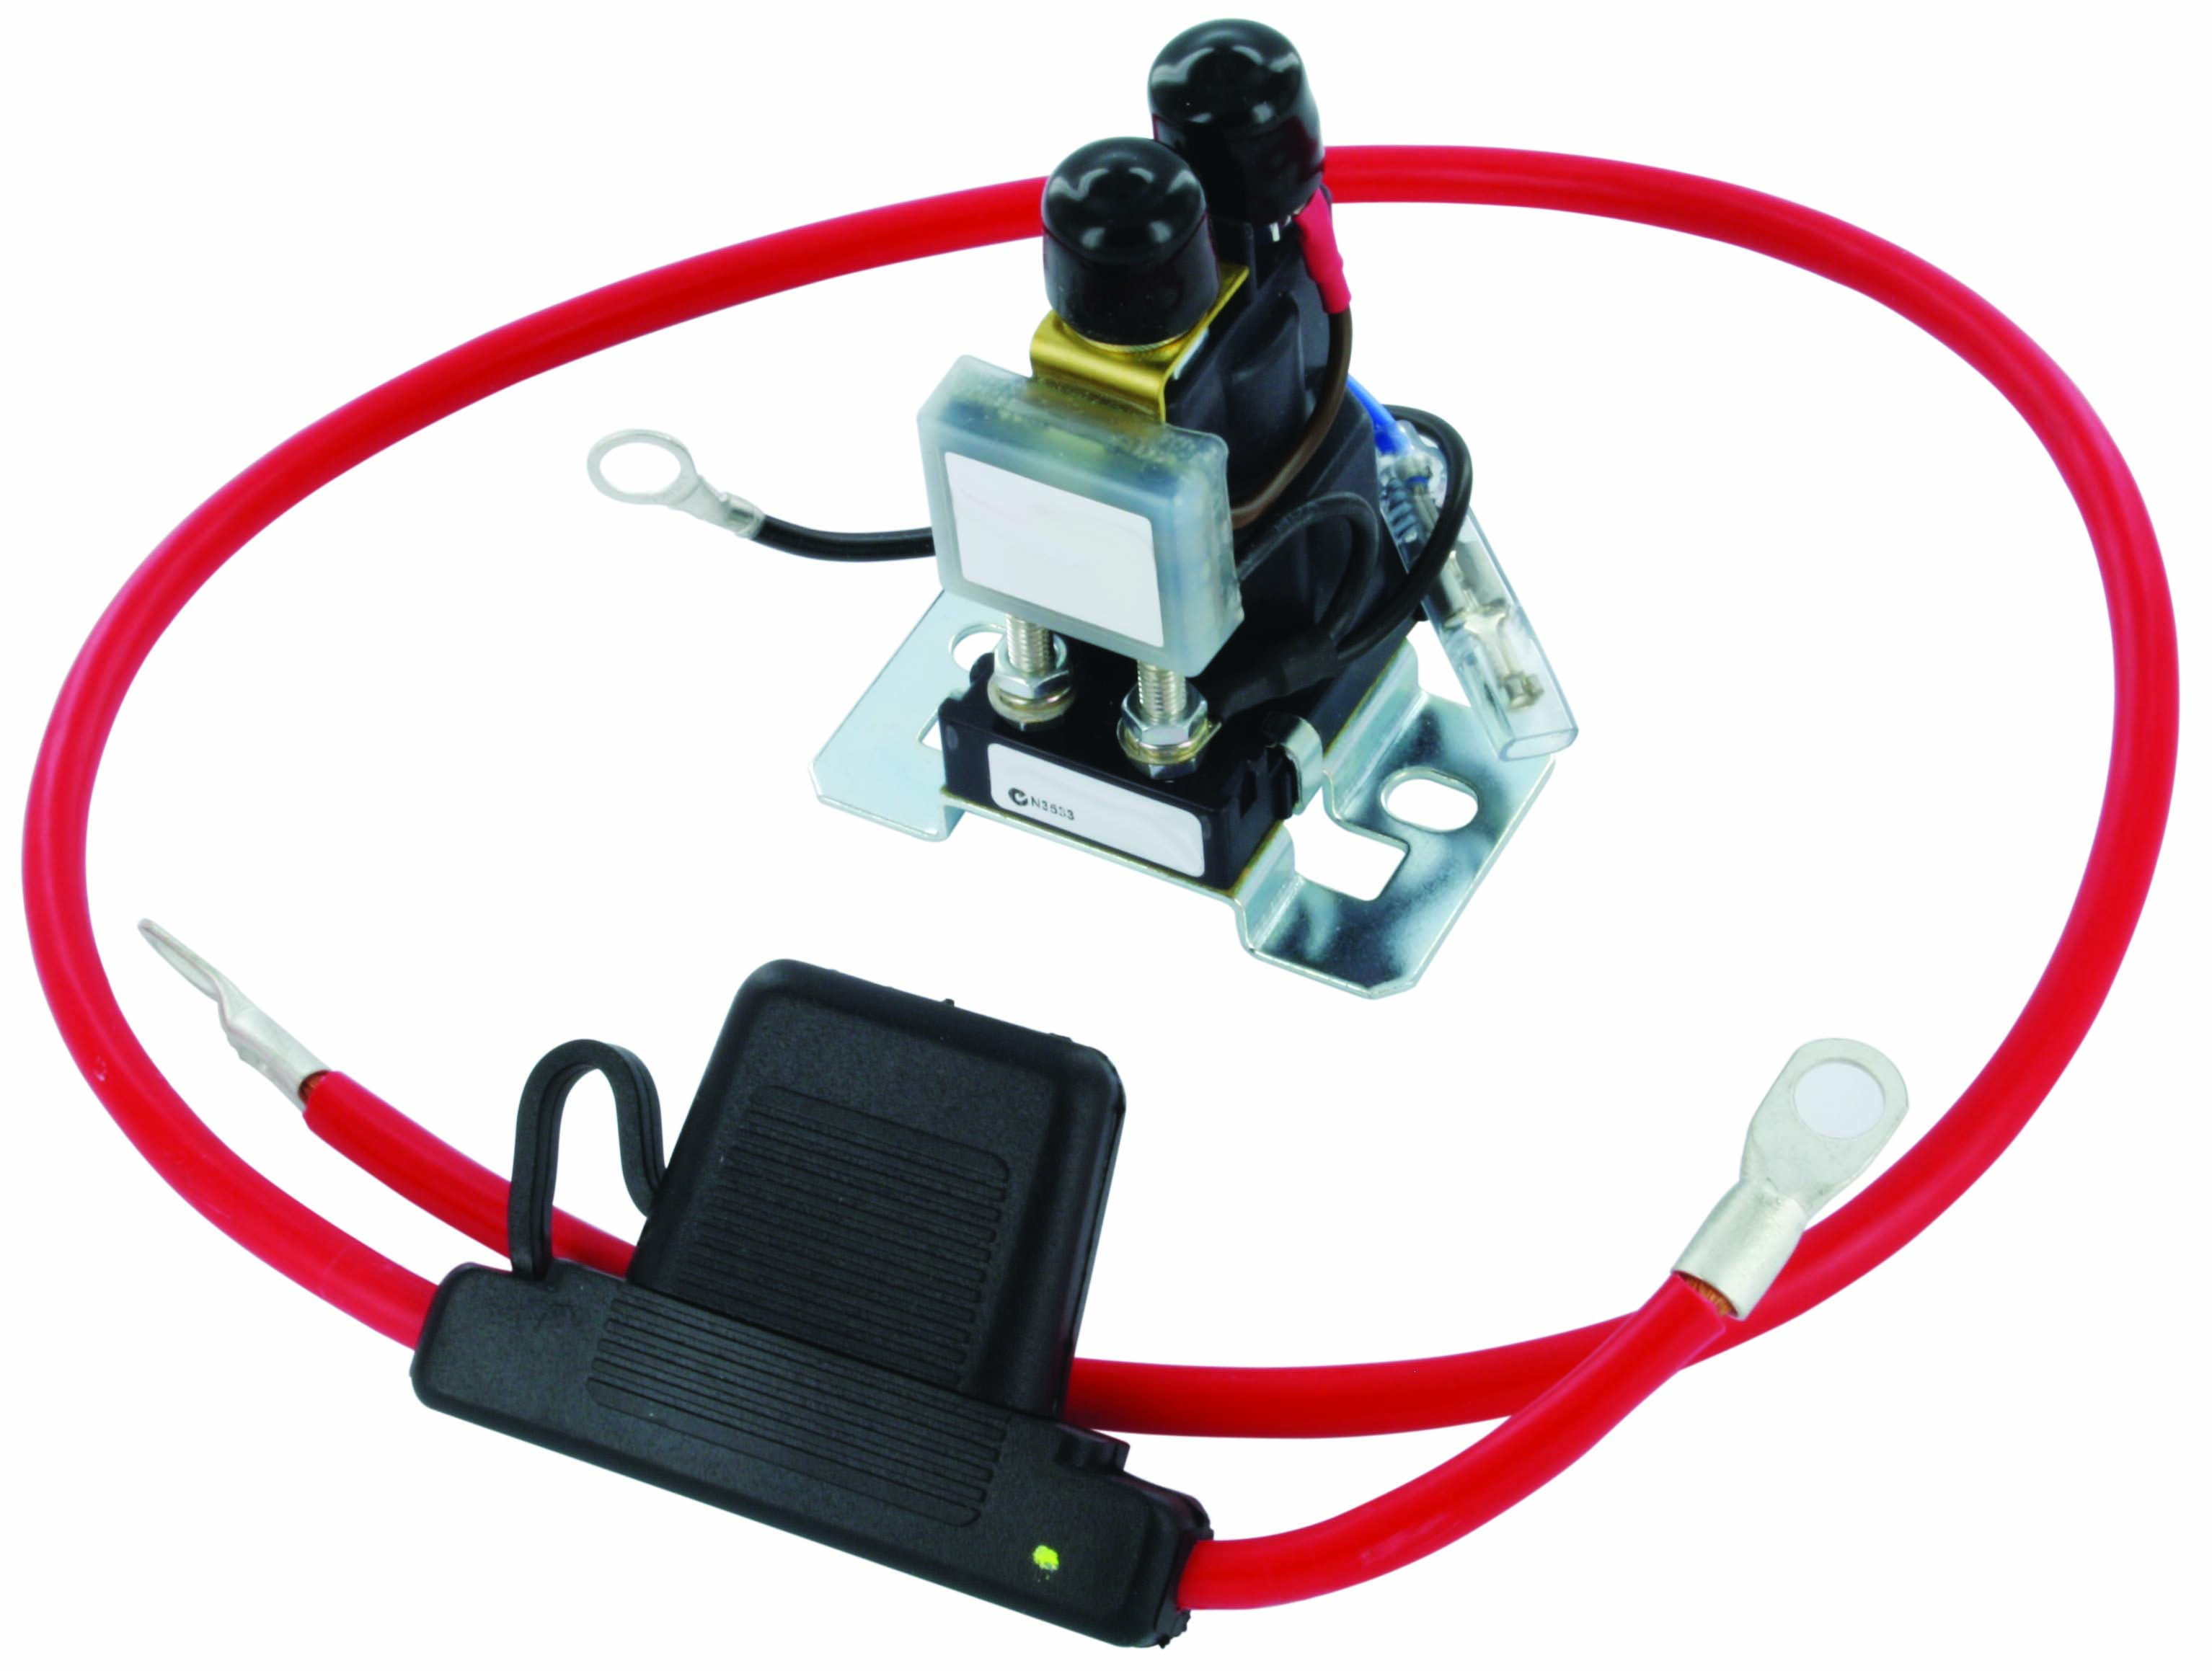 Hayman Reese Electrics Truracks Western Sydney Towbar Bullbar Australian Wiring Harness In Addition Electric Trailer Brake This Smart Battery Isolater Will Have A Voltage Of 132 Volts And Cut Out 127 Prevents The Primary Vehicle From Over Draining Due